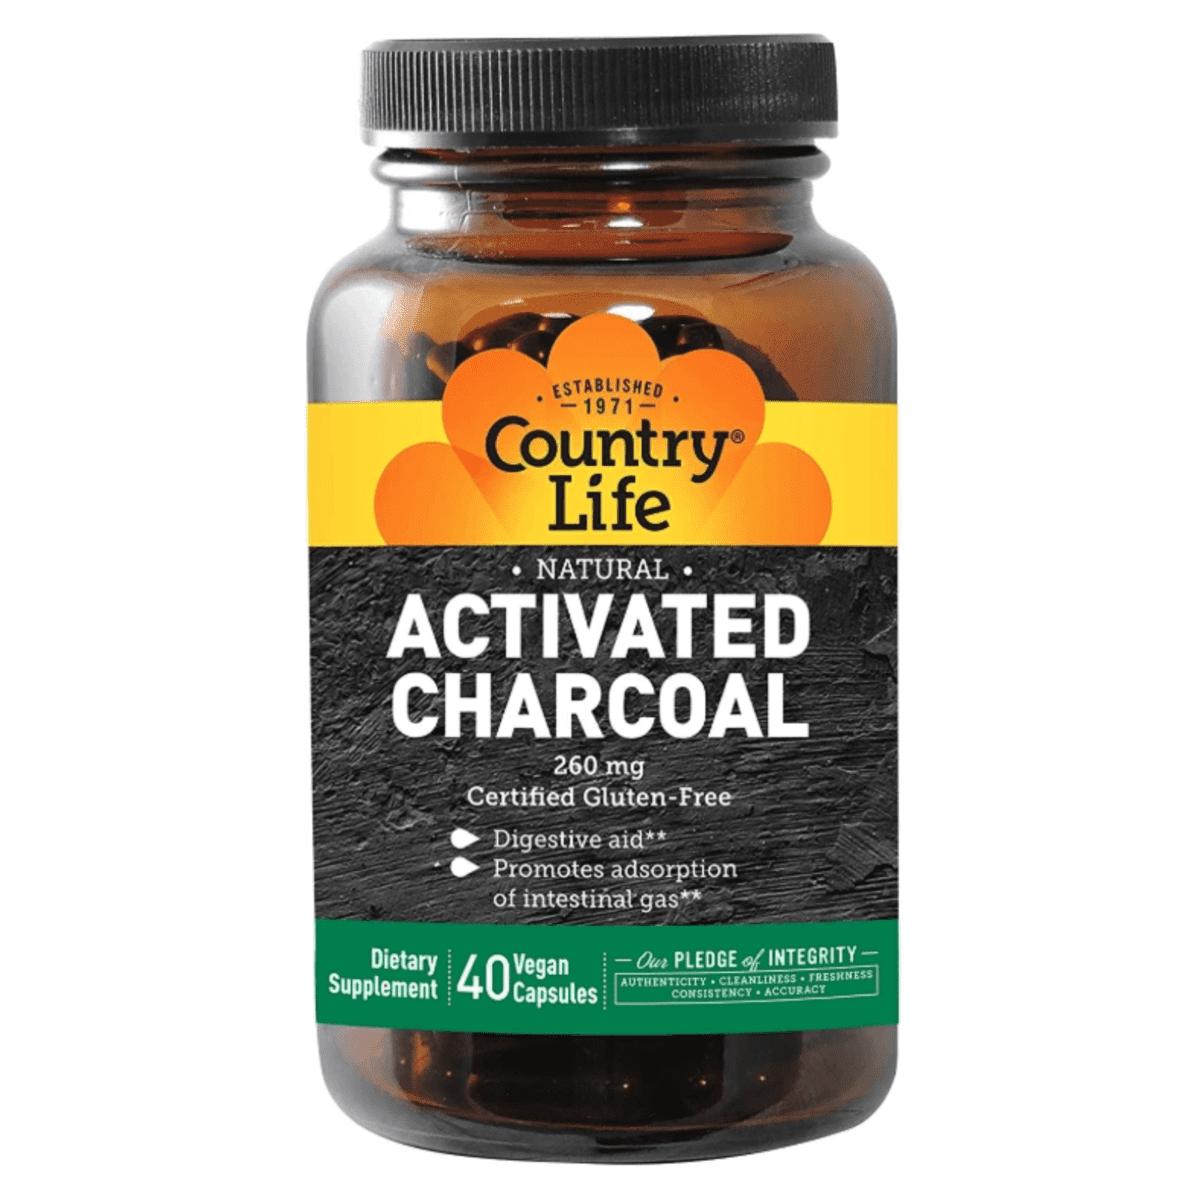 Country Life - Activated Charcoal, 260 mg - 40 Vegan Capsules - AM VITAMINS